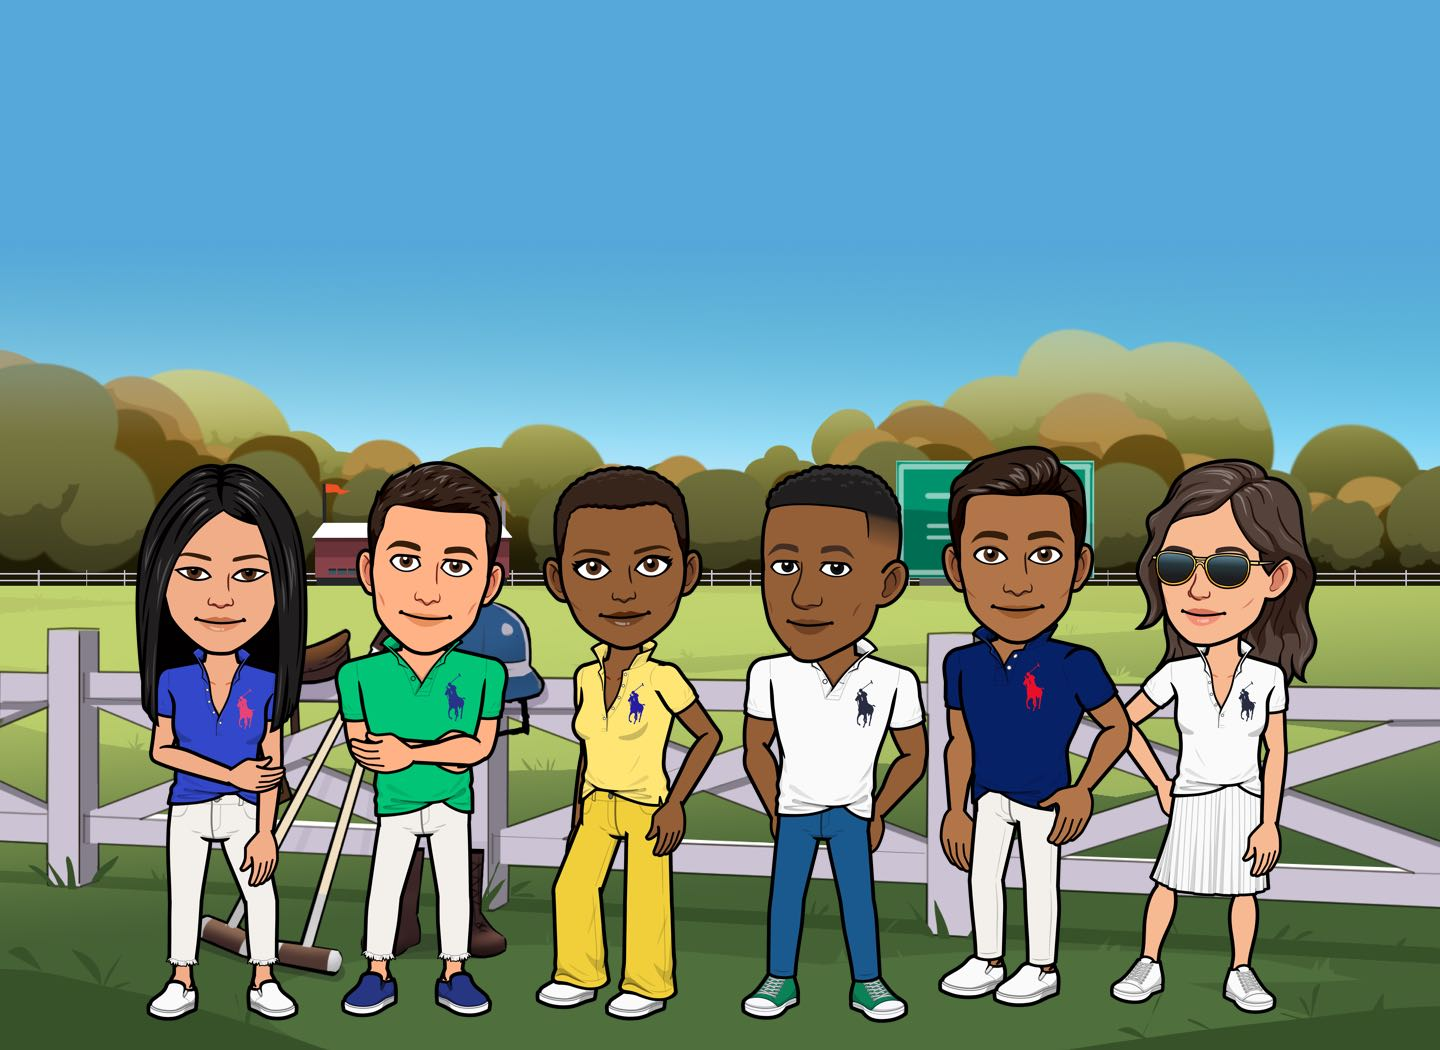 Row of male & female Bitmojis in Polos in different colors